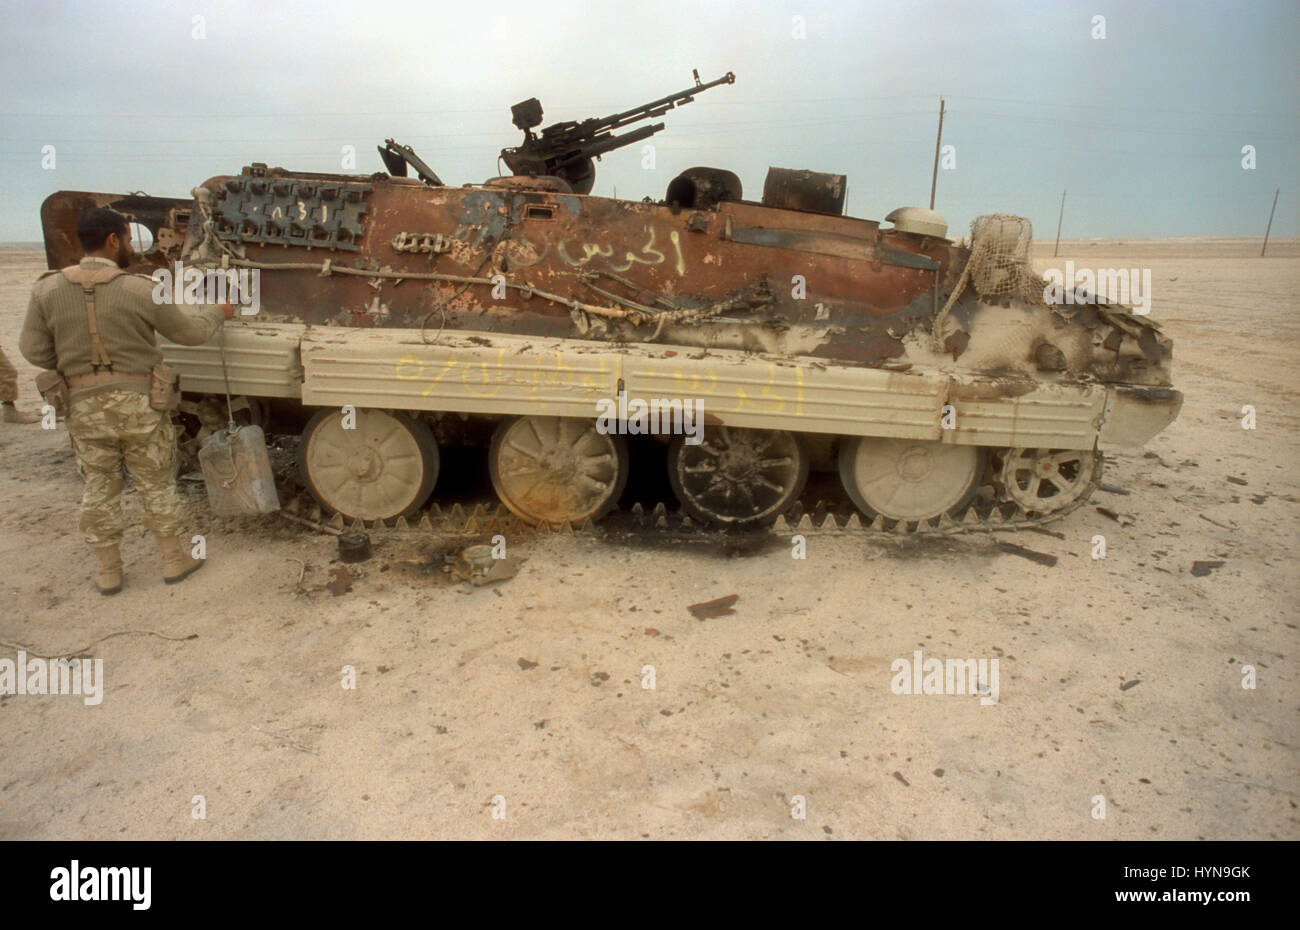 A Qatari soldier inspects an Iraqi armored personnel carrier destroyed by U.S Aircraft following the Battle of Khafji - Stock Image